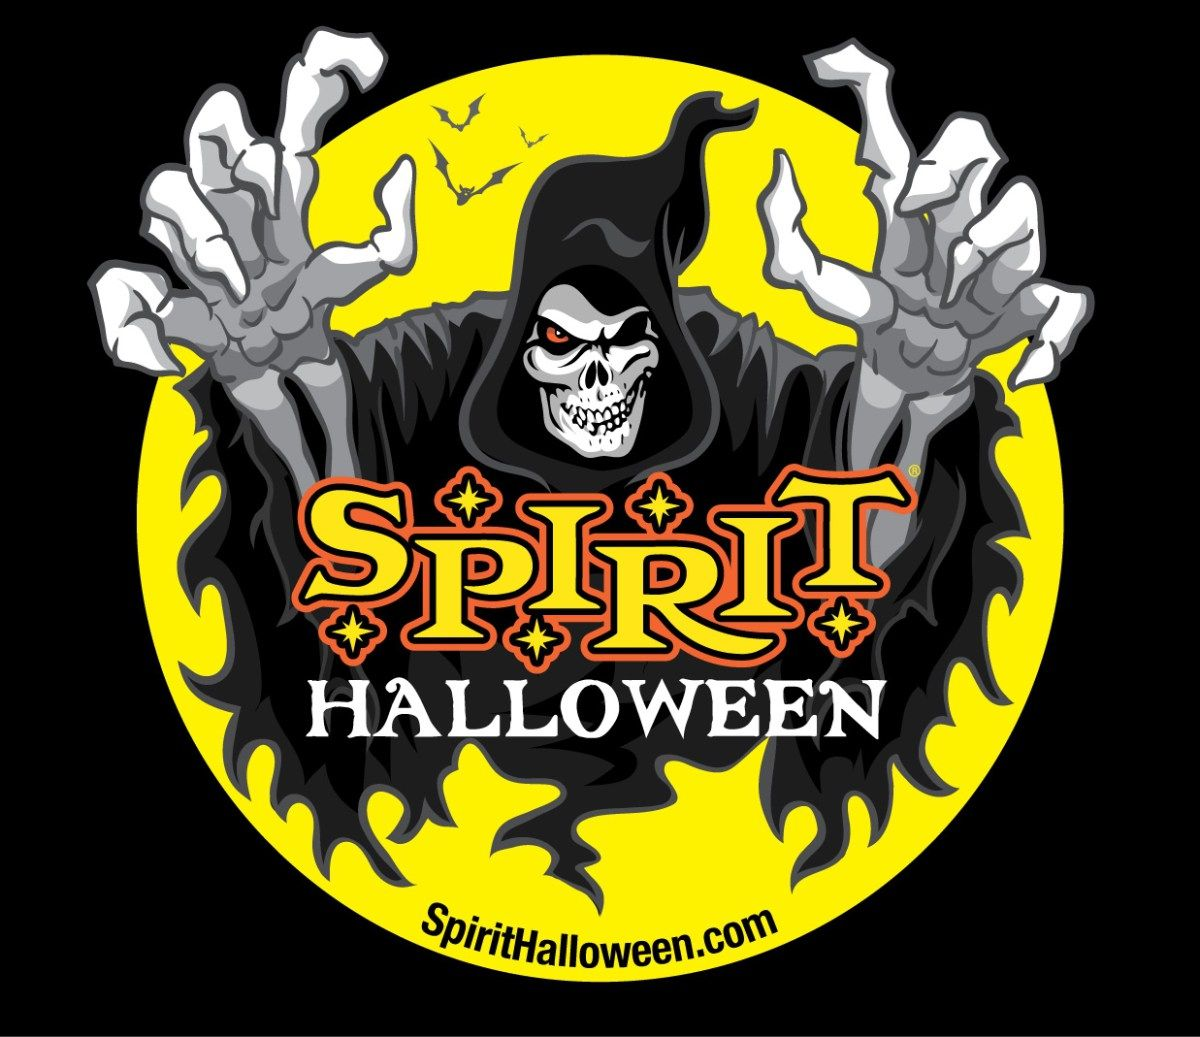 *HOT* 3 new Spirit Halloween Coupons available! Spirit